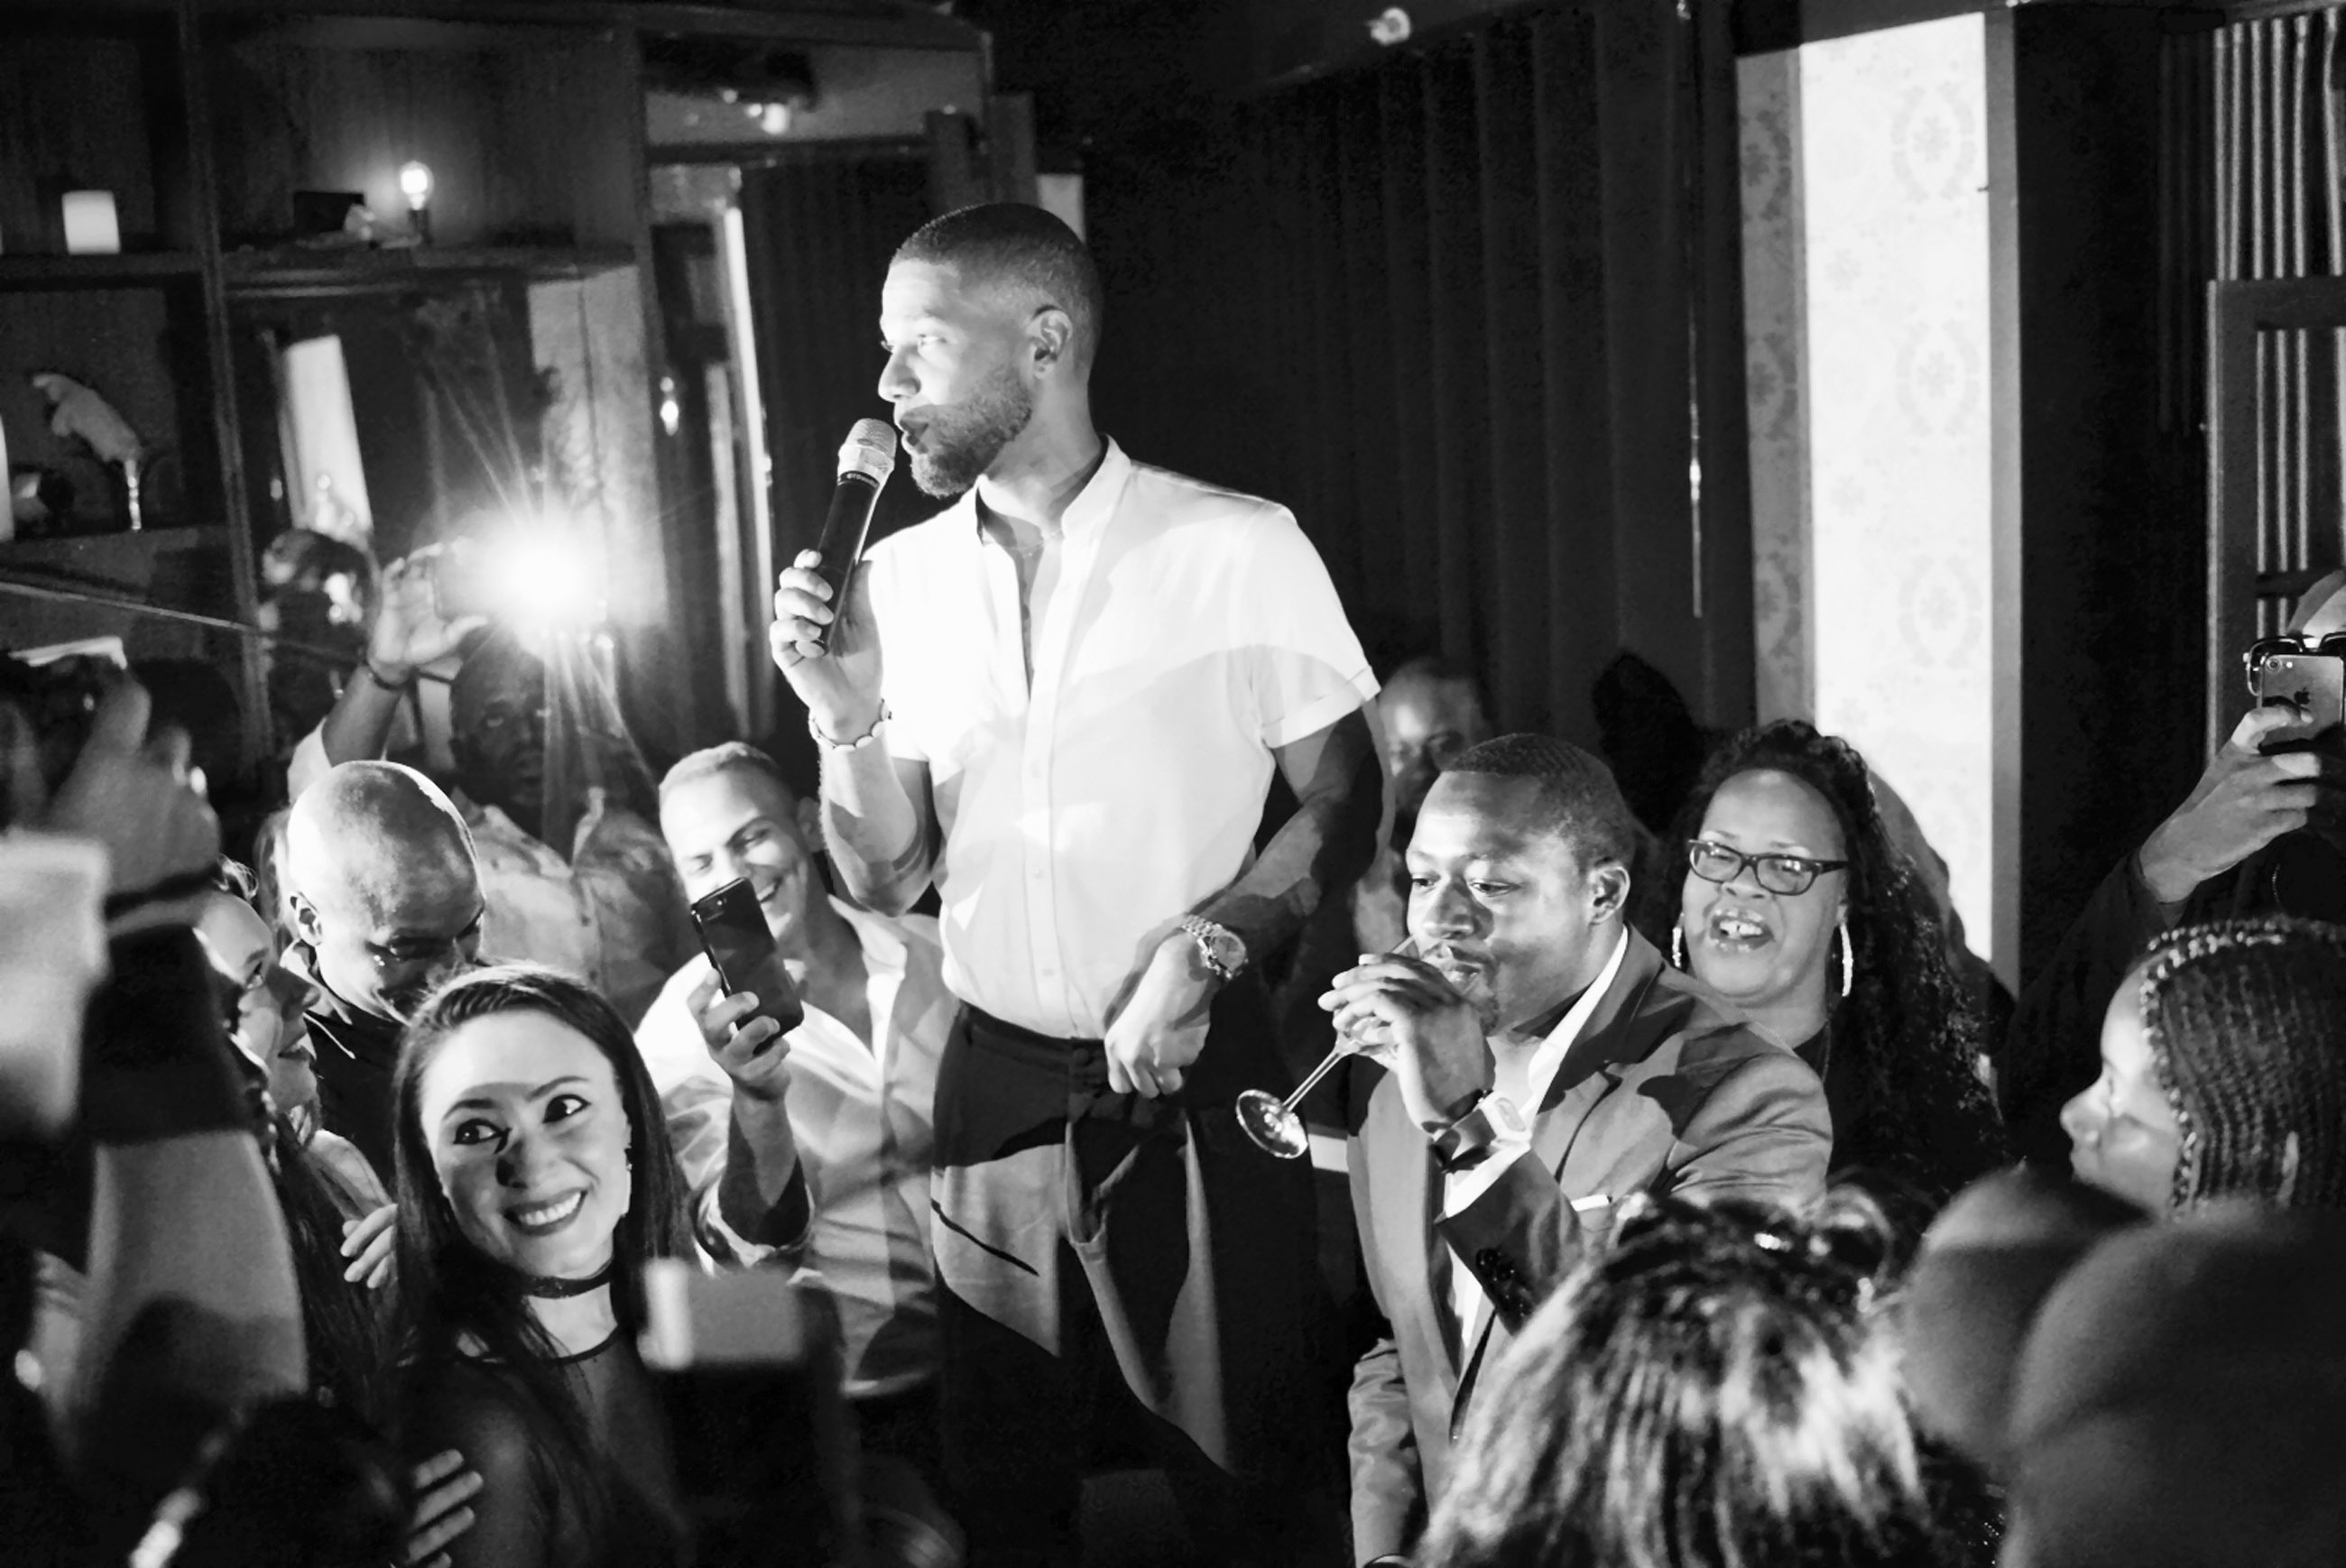 Spirit & Flesh Magazine Jussie Smollett cover event by Antonio Navas